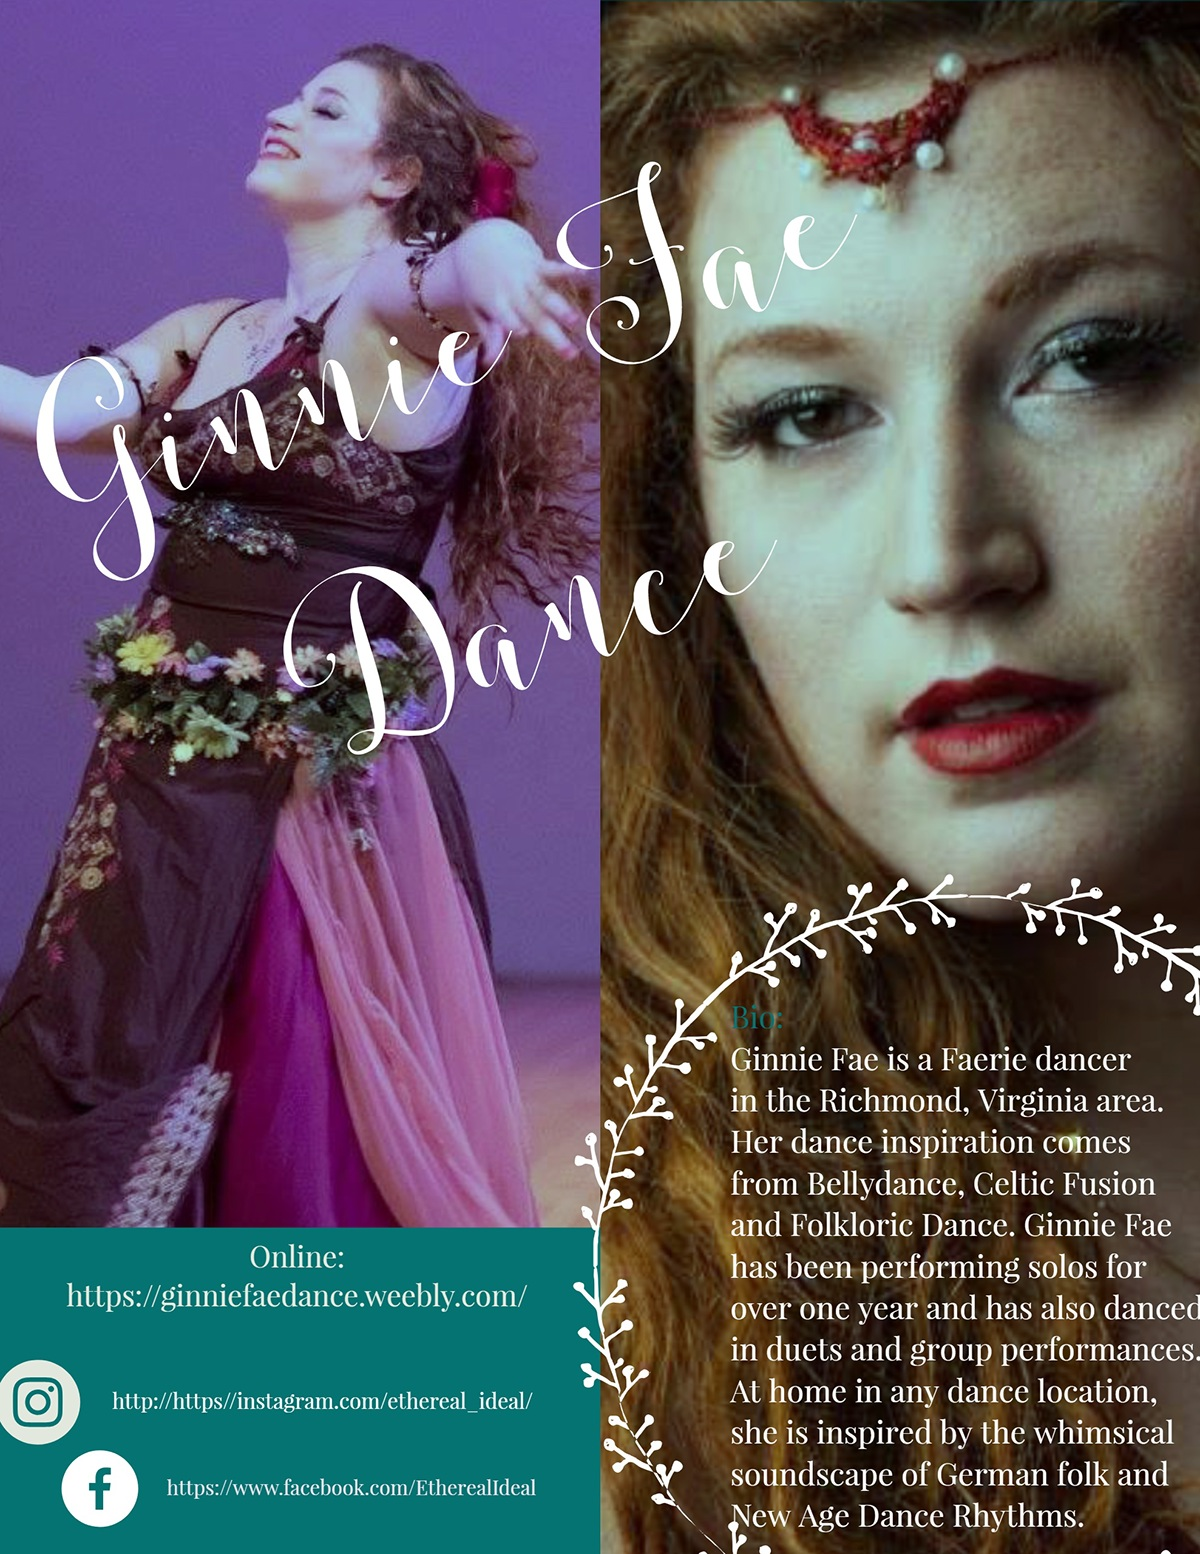 Ginnie Fae Dance Ginnie Fae Dance<P>Bio: <BR>   Ginnie Fae is a Faerie dancer in the Richmond, Virginia area. Her dance inspiration comes from Bellydance, Celtic Fusion and Folkloric Dance. Ginnie Fae has been performing solos for over one year and has also danced in duets and group performances. <BR>    At home in any dance location, she is inspired by the whimsical soundscape of German folk and New Age Dance Rhythms. <P>Online:<BR>https://ginniefaedance.weebly.com/<P>http://https//instagram.com/ethereal_ideal/<P>https://www.facebook.com/EtherealIdeal